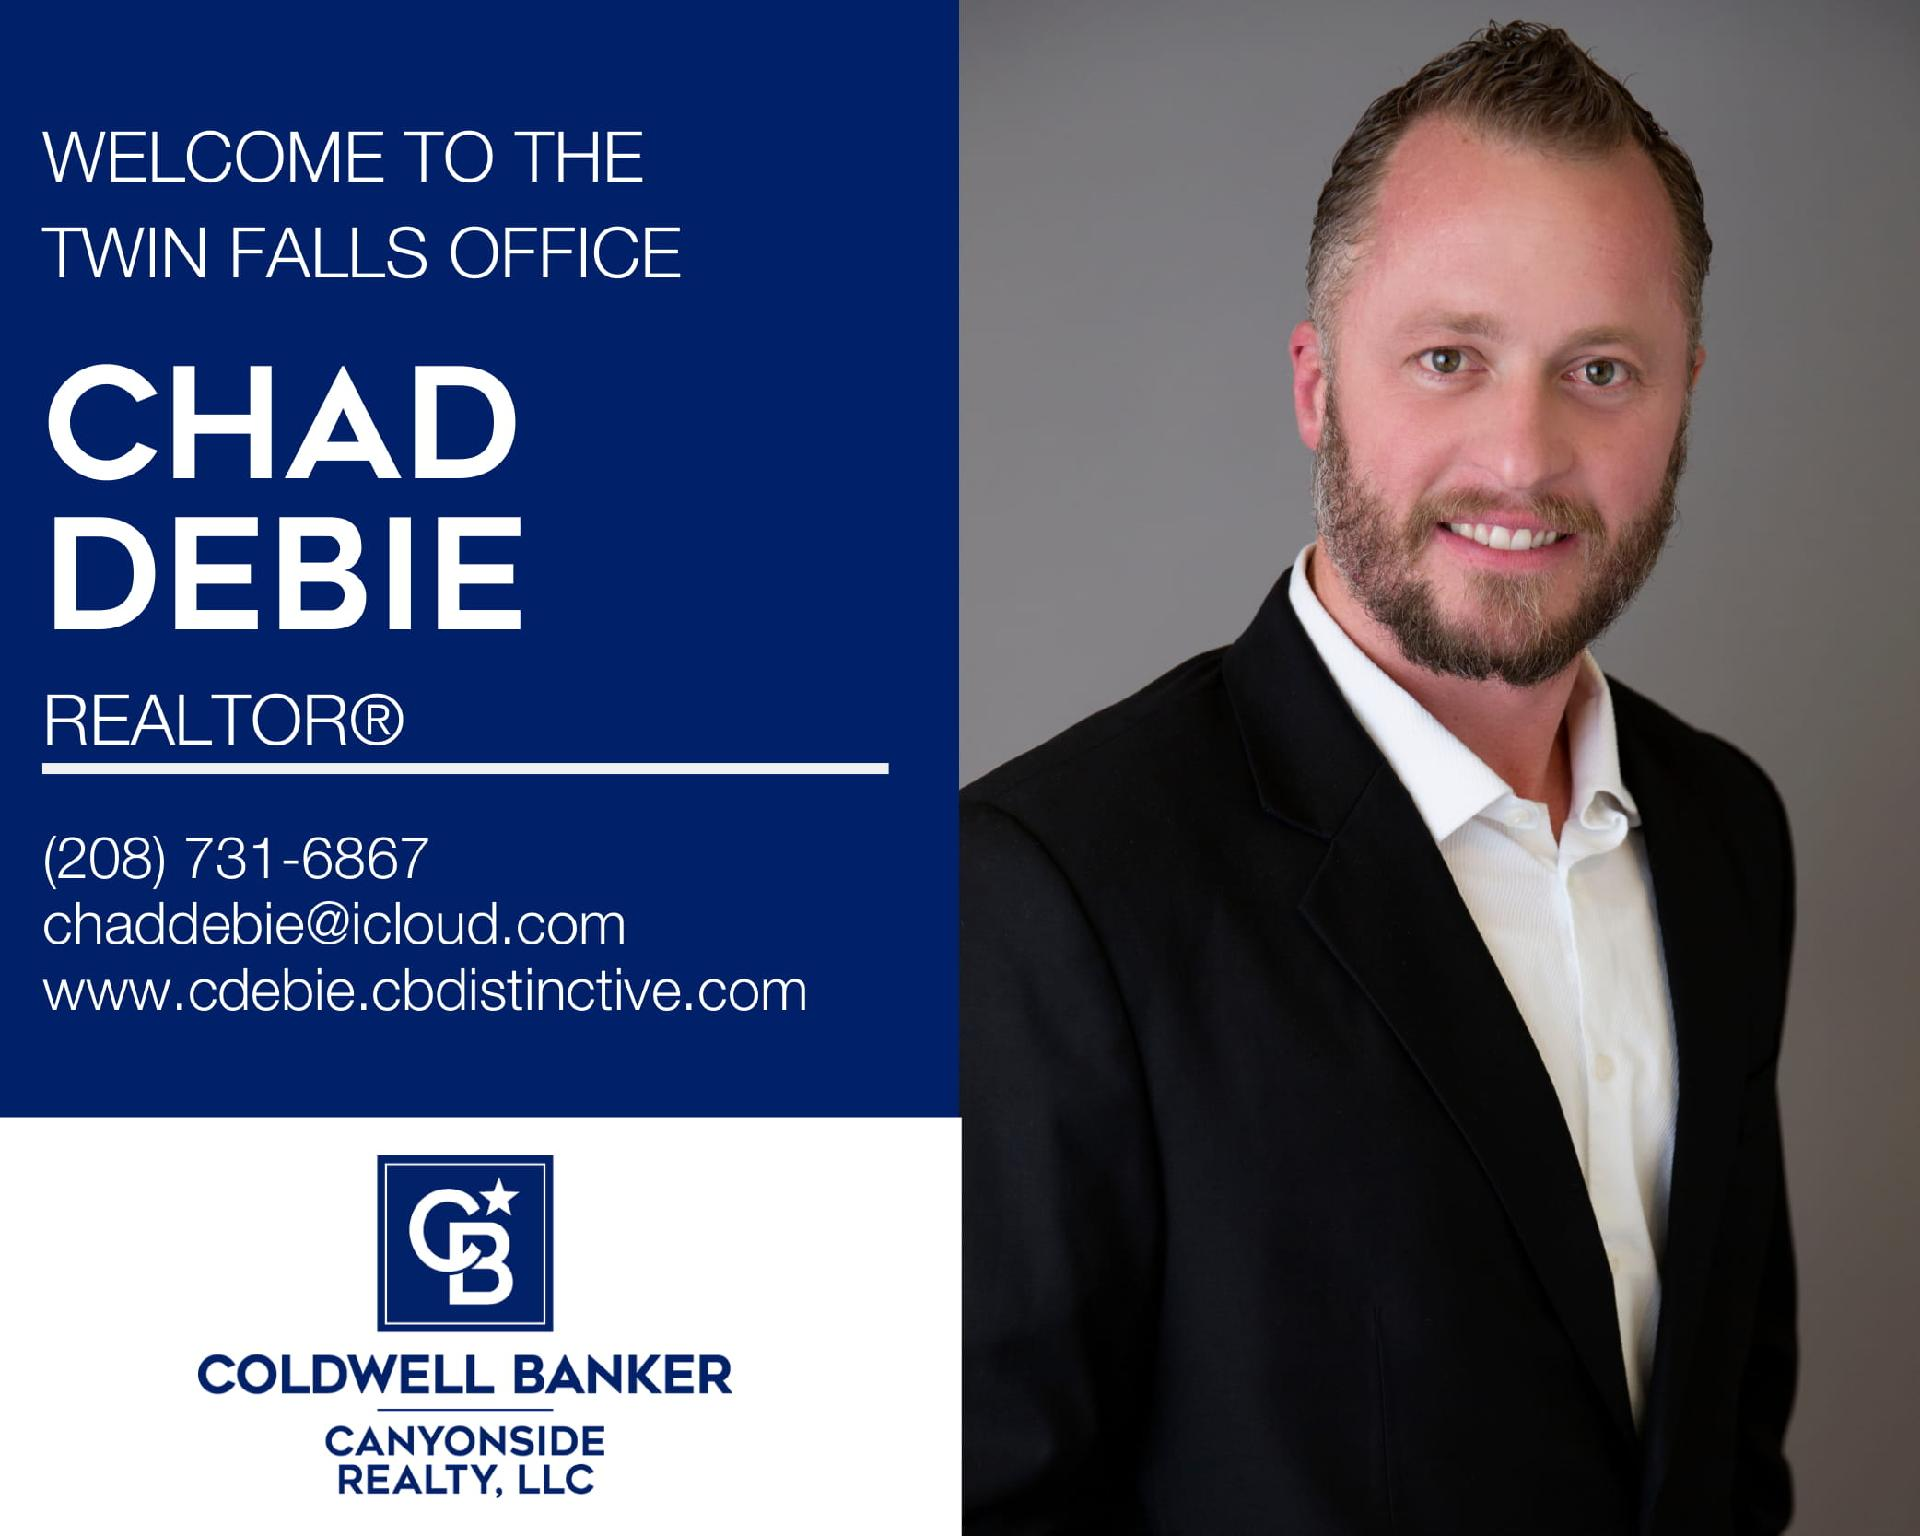 Please help us welcome Chad DeBie to our Coldwell Banker family! Main Photo